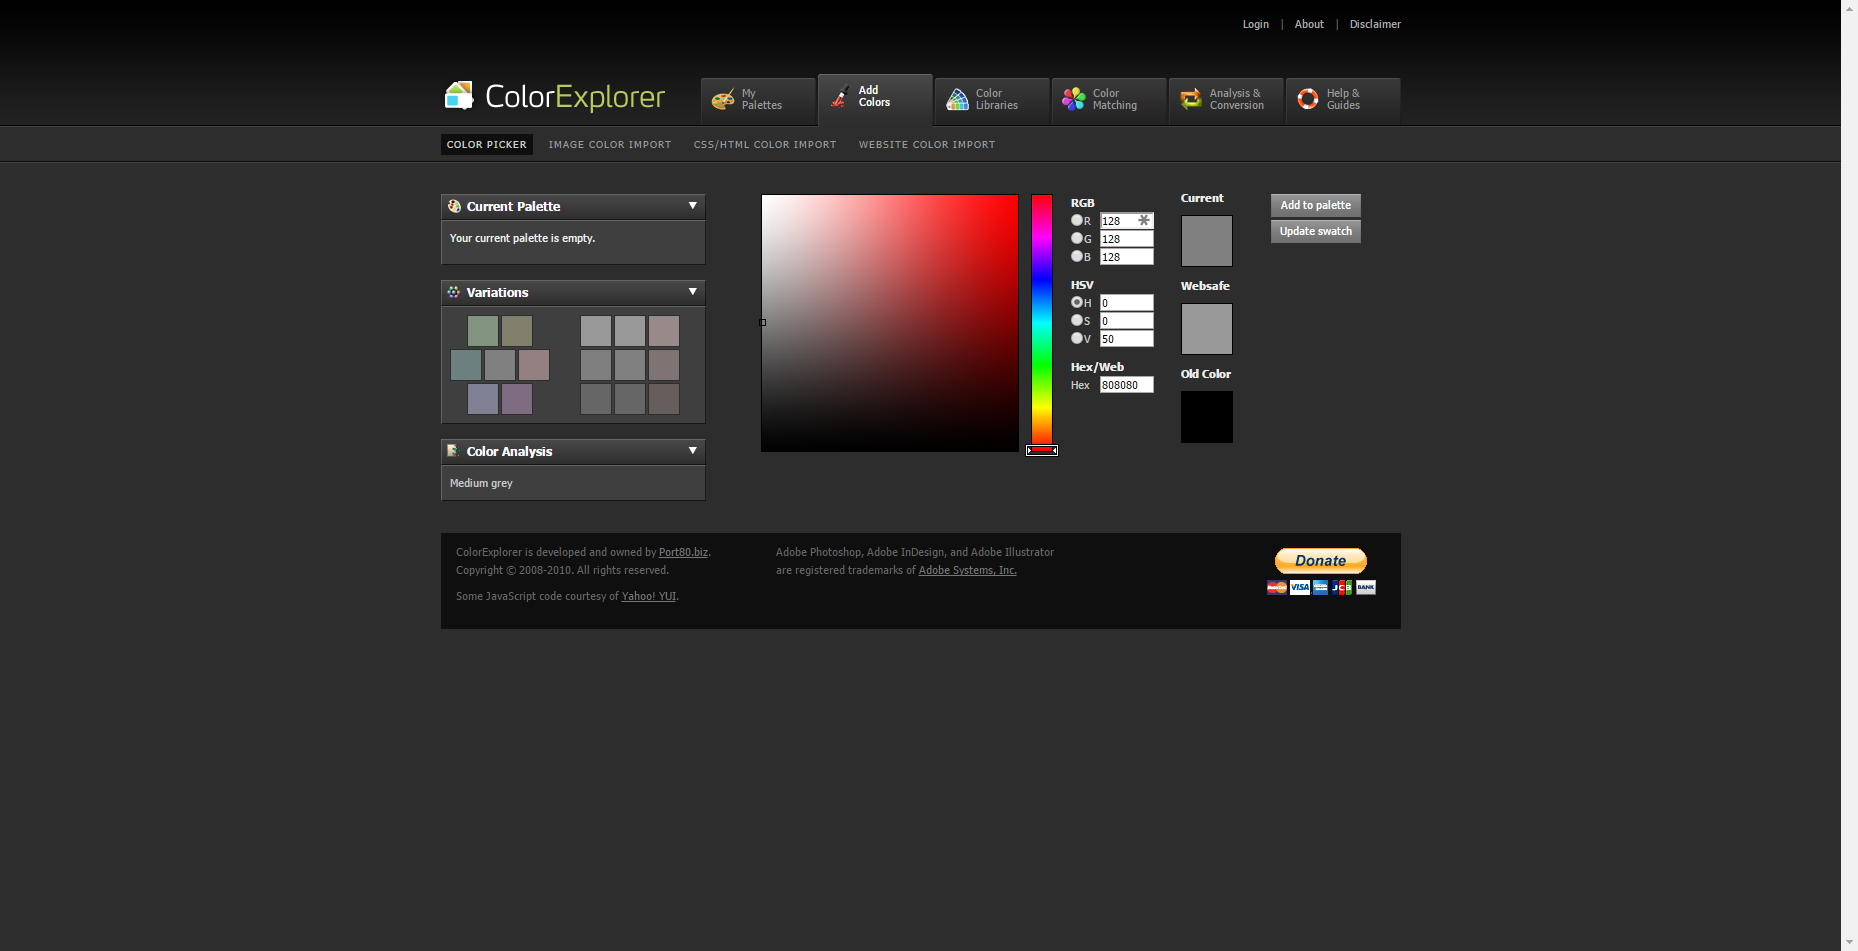 Best Free Online Color Picker COLOREXPLORER gives you color codes in RGB, HSV and Hex instantly when you choose a color from the vertical slider or color square. Choosing colors from Libraries and saving your picked colors to your Palettes are available.